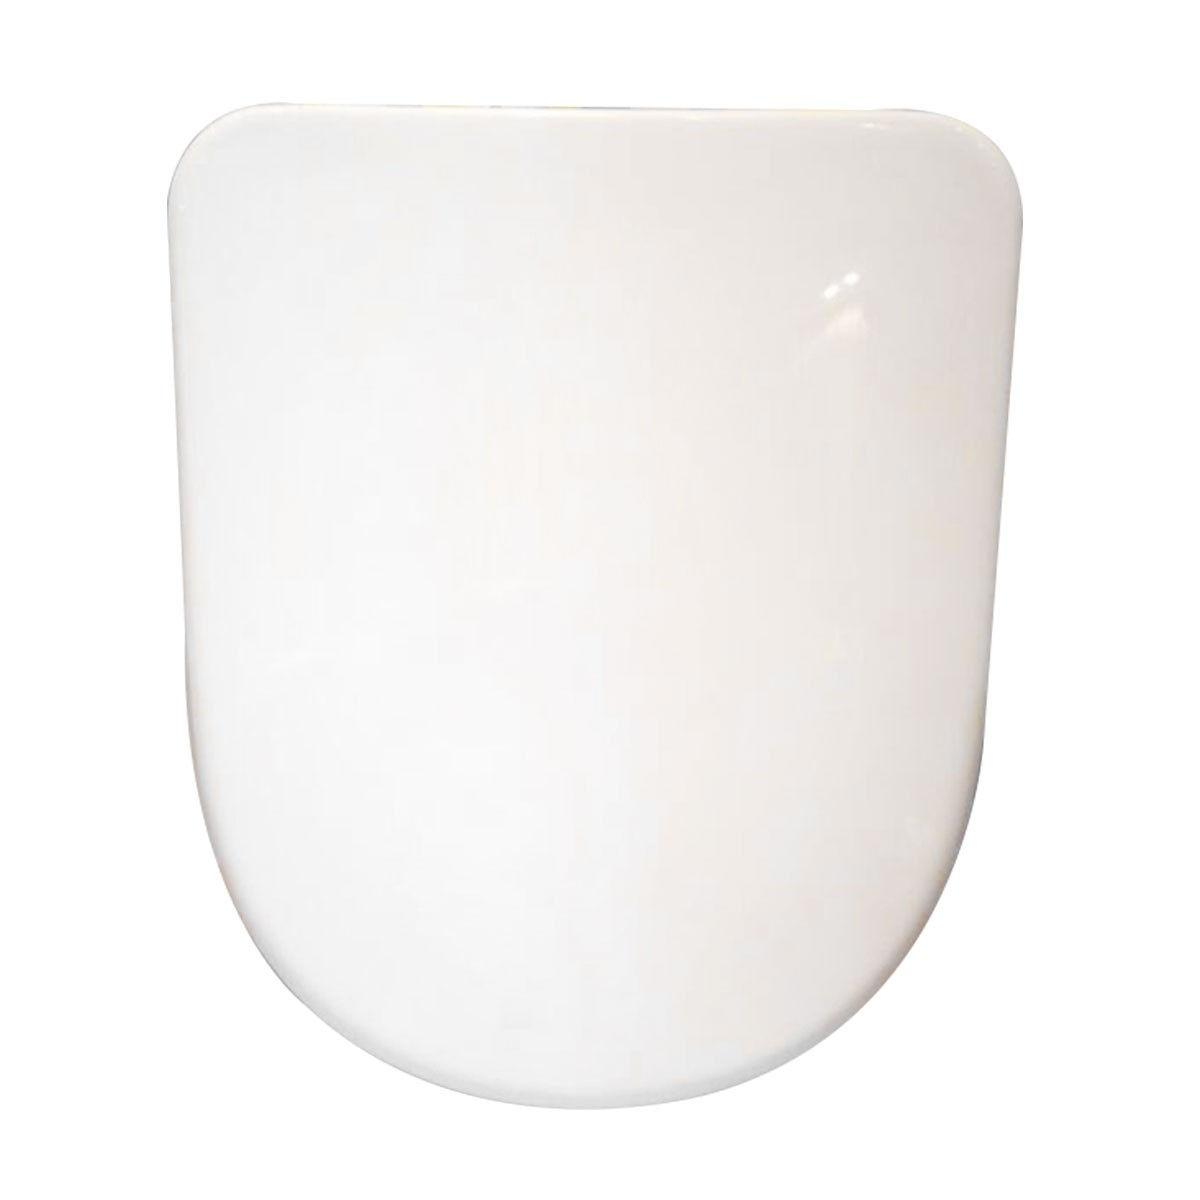 White Soft Close Toilet Seat with Cover (DK-CL-040)